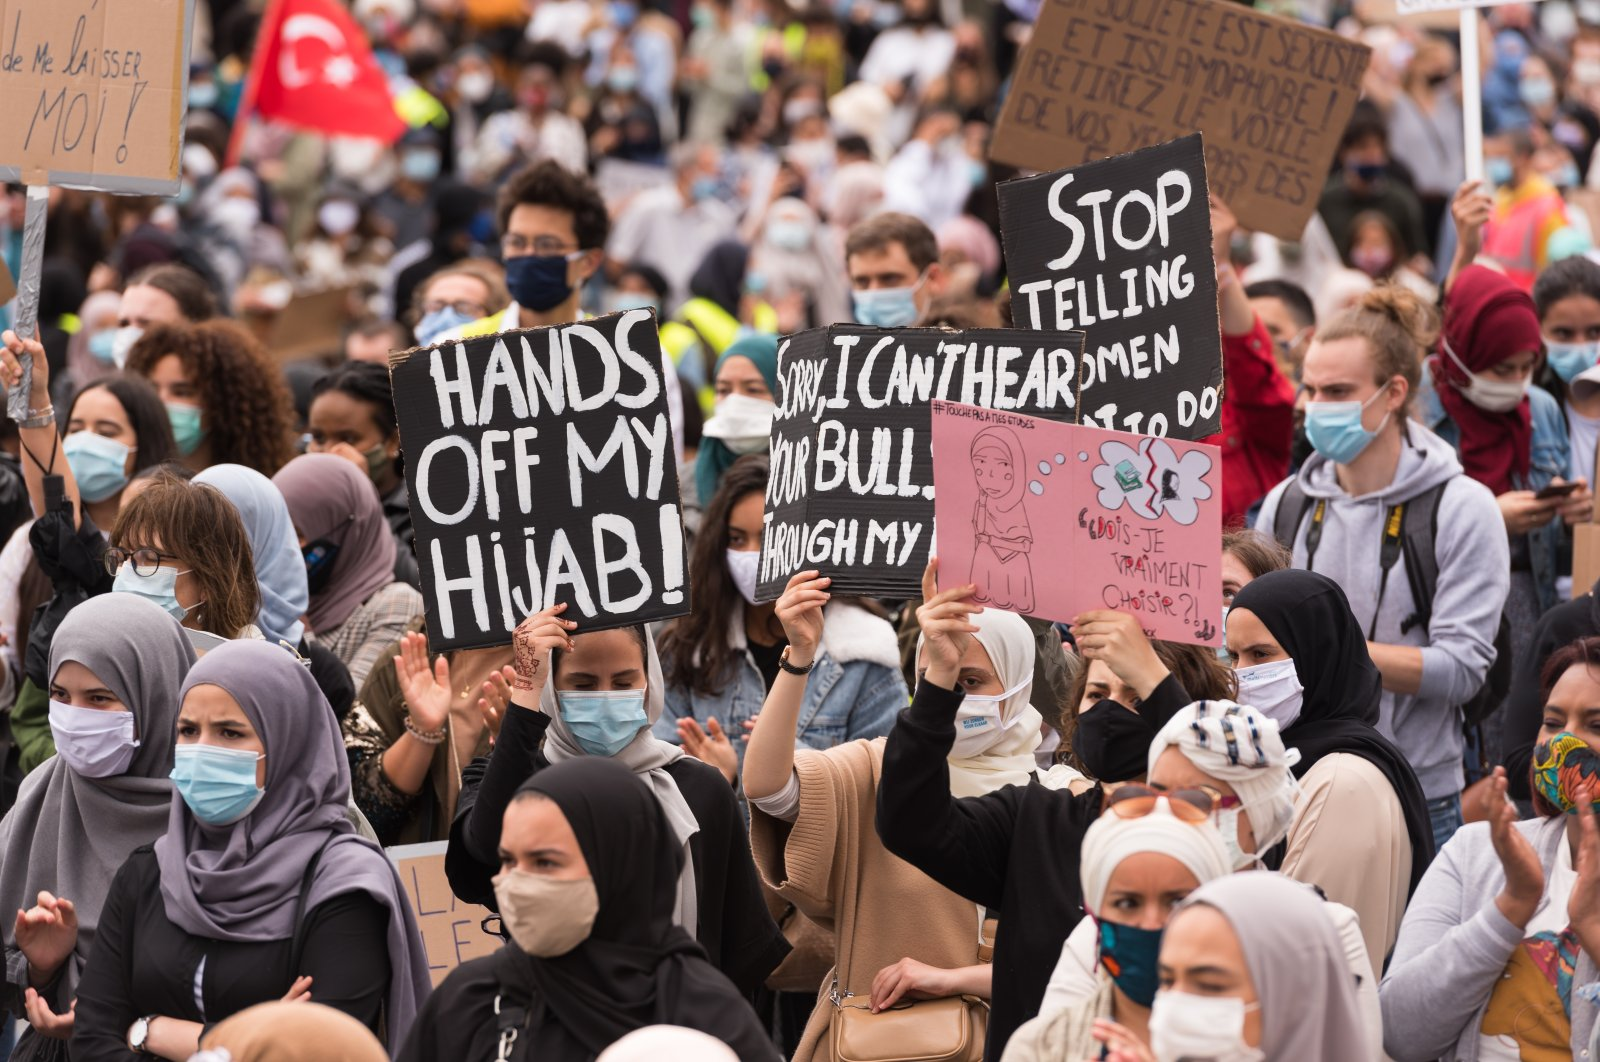 People hold placards protesting the headscarf ban at a Brussels college, Belgium, June 5, 2020. (Photo by Getty Images)